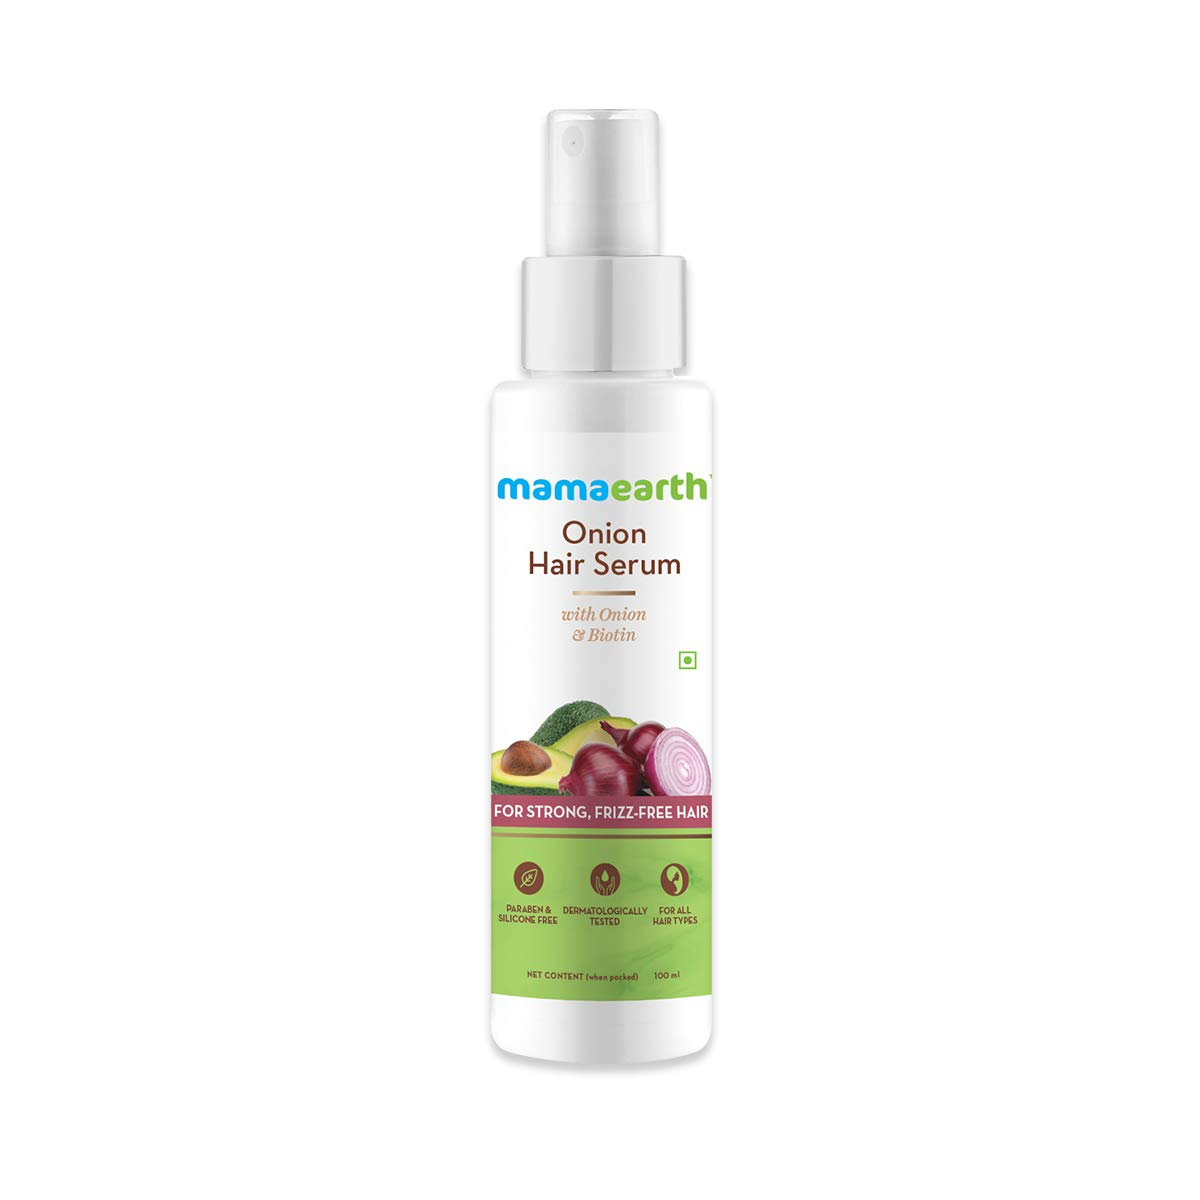 Mamaearth Onion Hair Serum For Silky & Smooth Hair, Tames Frizzy Hair, with Onion & Biotin for Strong, Tangle Free & Frizz-Free Hair - 100 ml